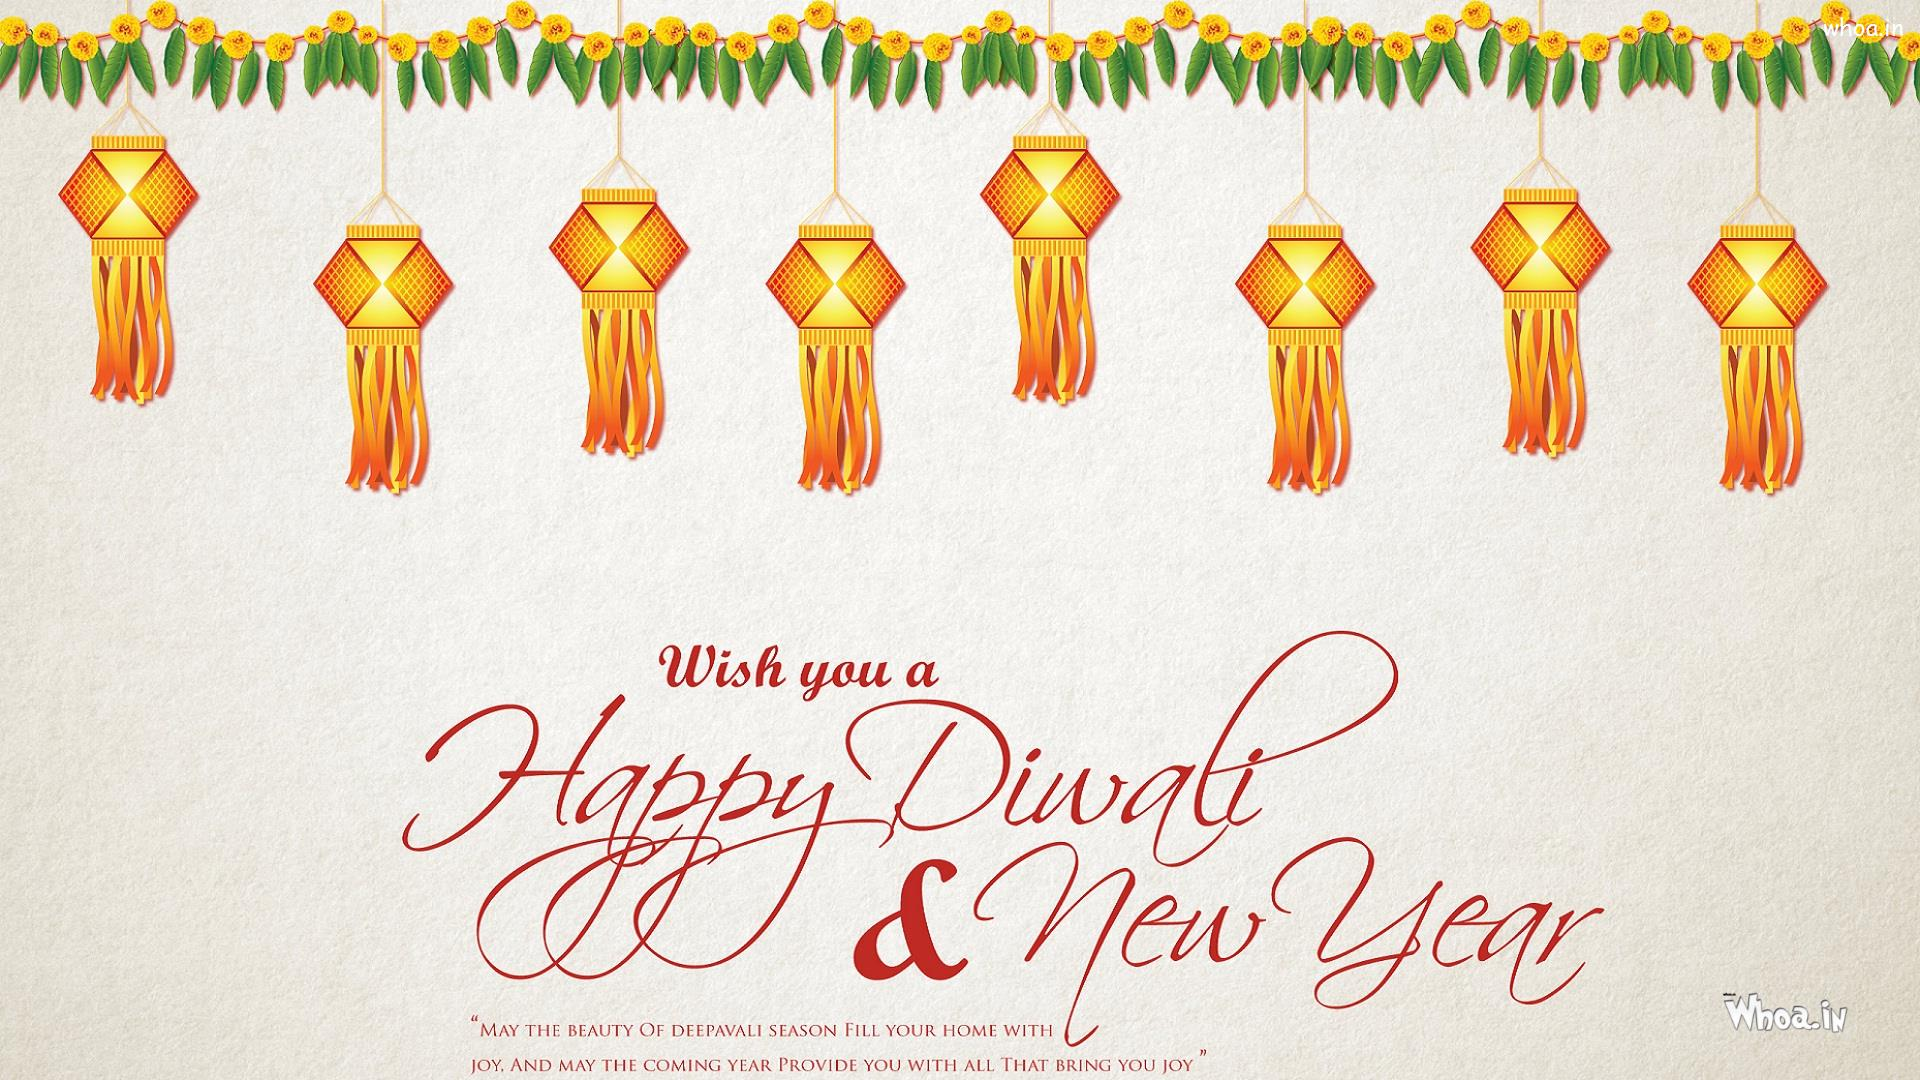 wish you a happy diwali and happy new year with quotes hd wallpaper happy new year with quotes hd wallpaper